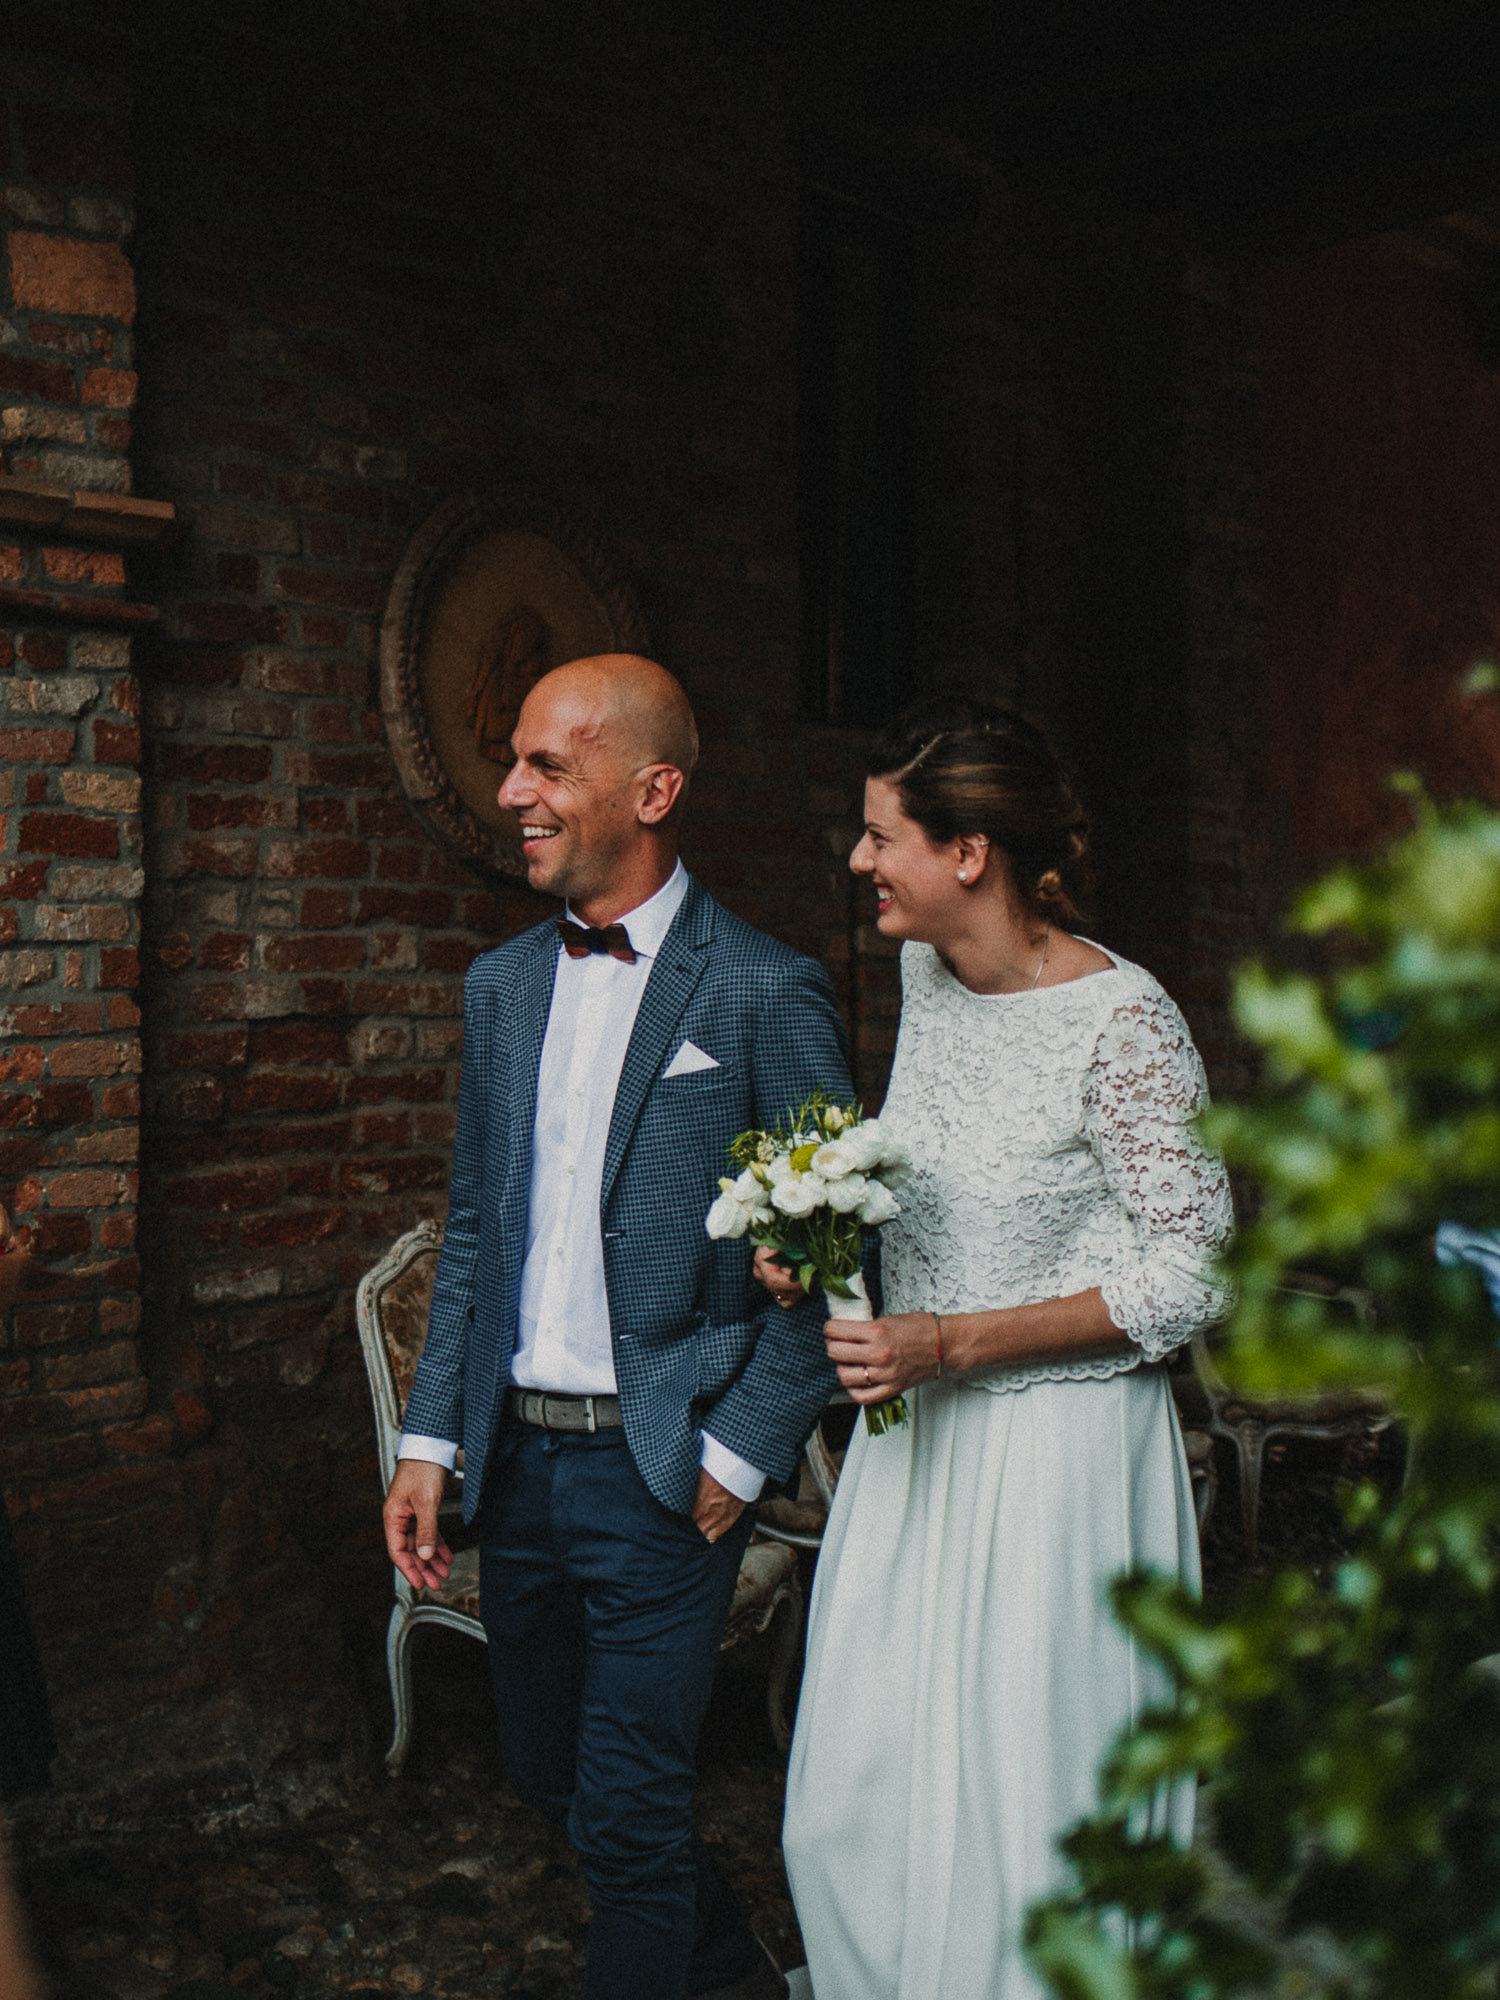 moody wedding portrait of Gio and irene matrimonio sole ristorante in maleo